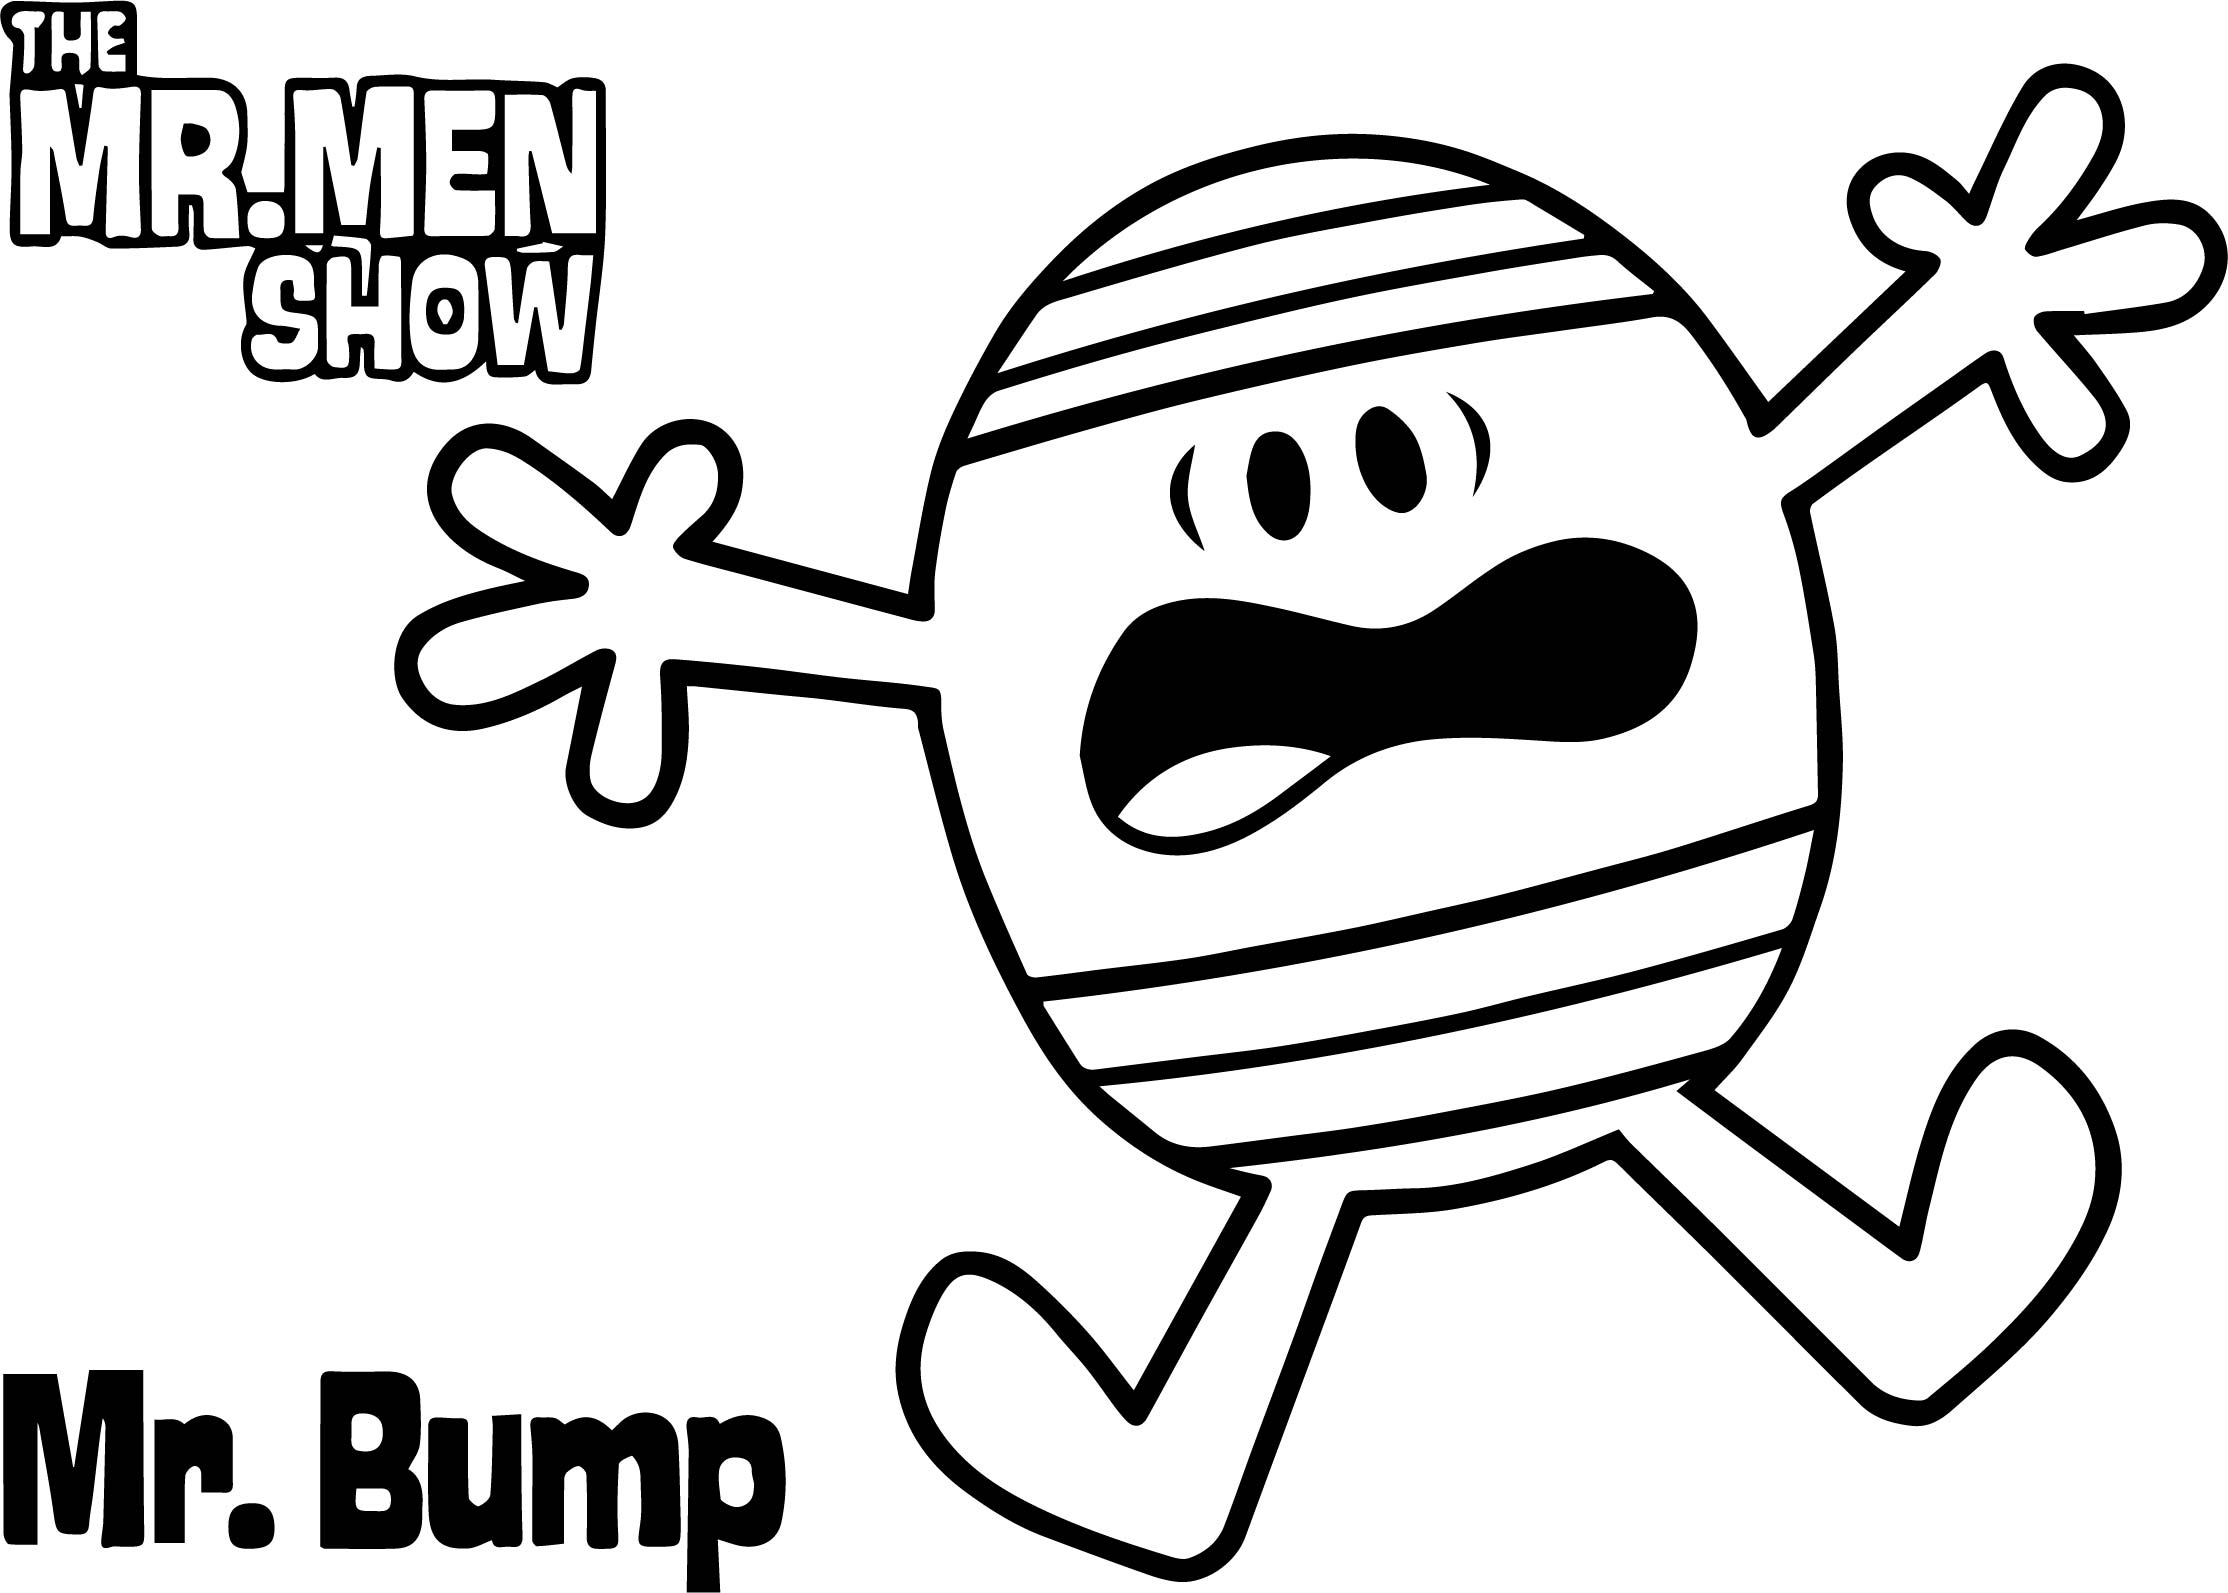 the mr men show cartoon network coloring page